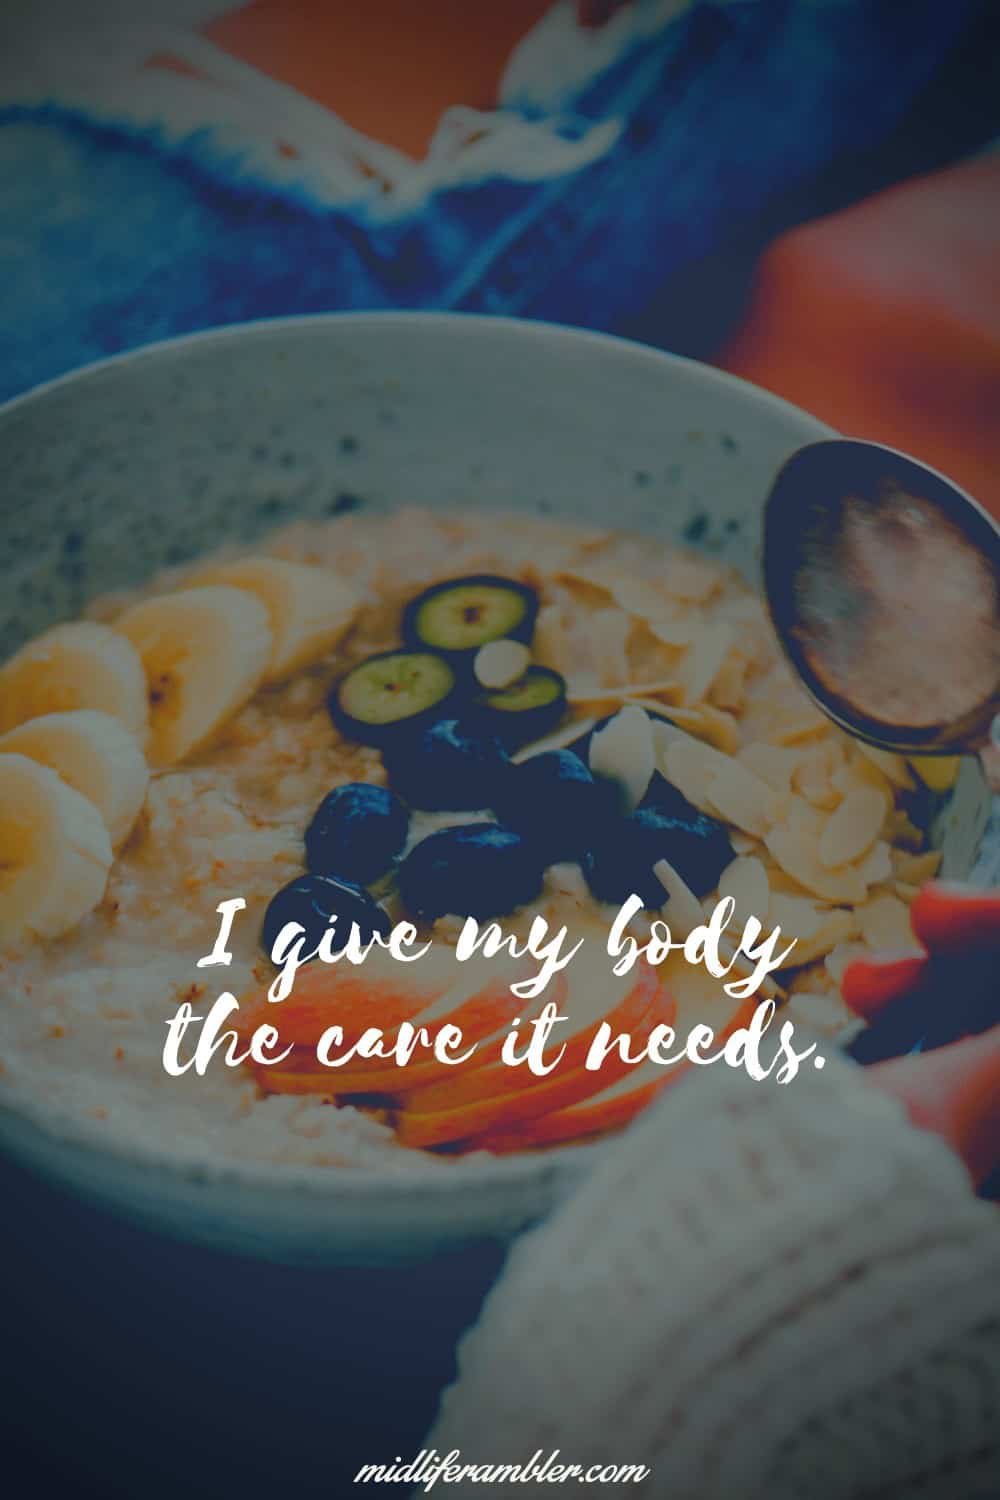 Affirmations for Self-Compassion - I give my body the care it needs.